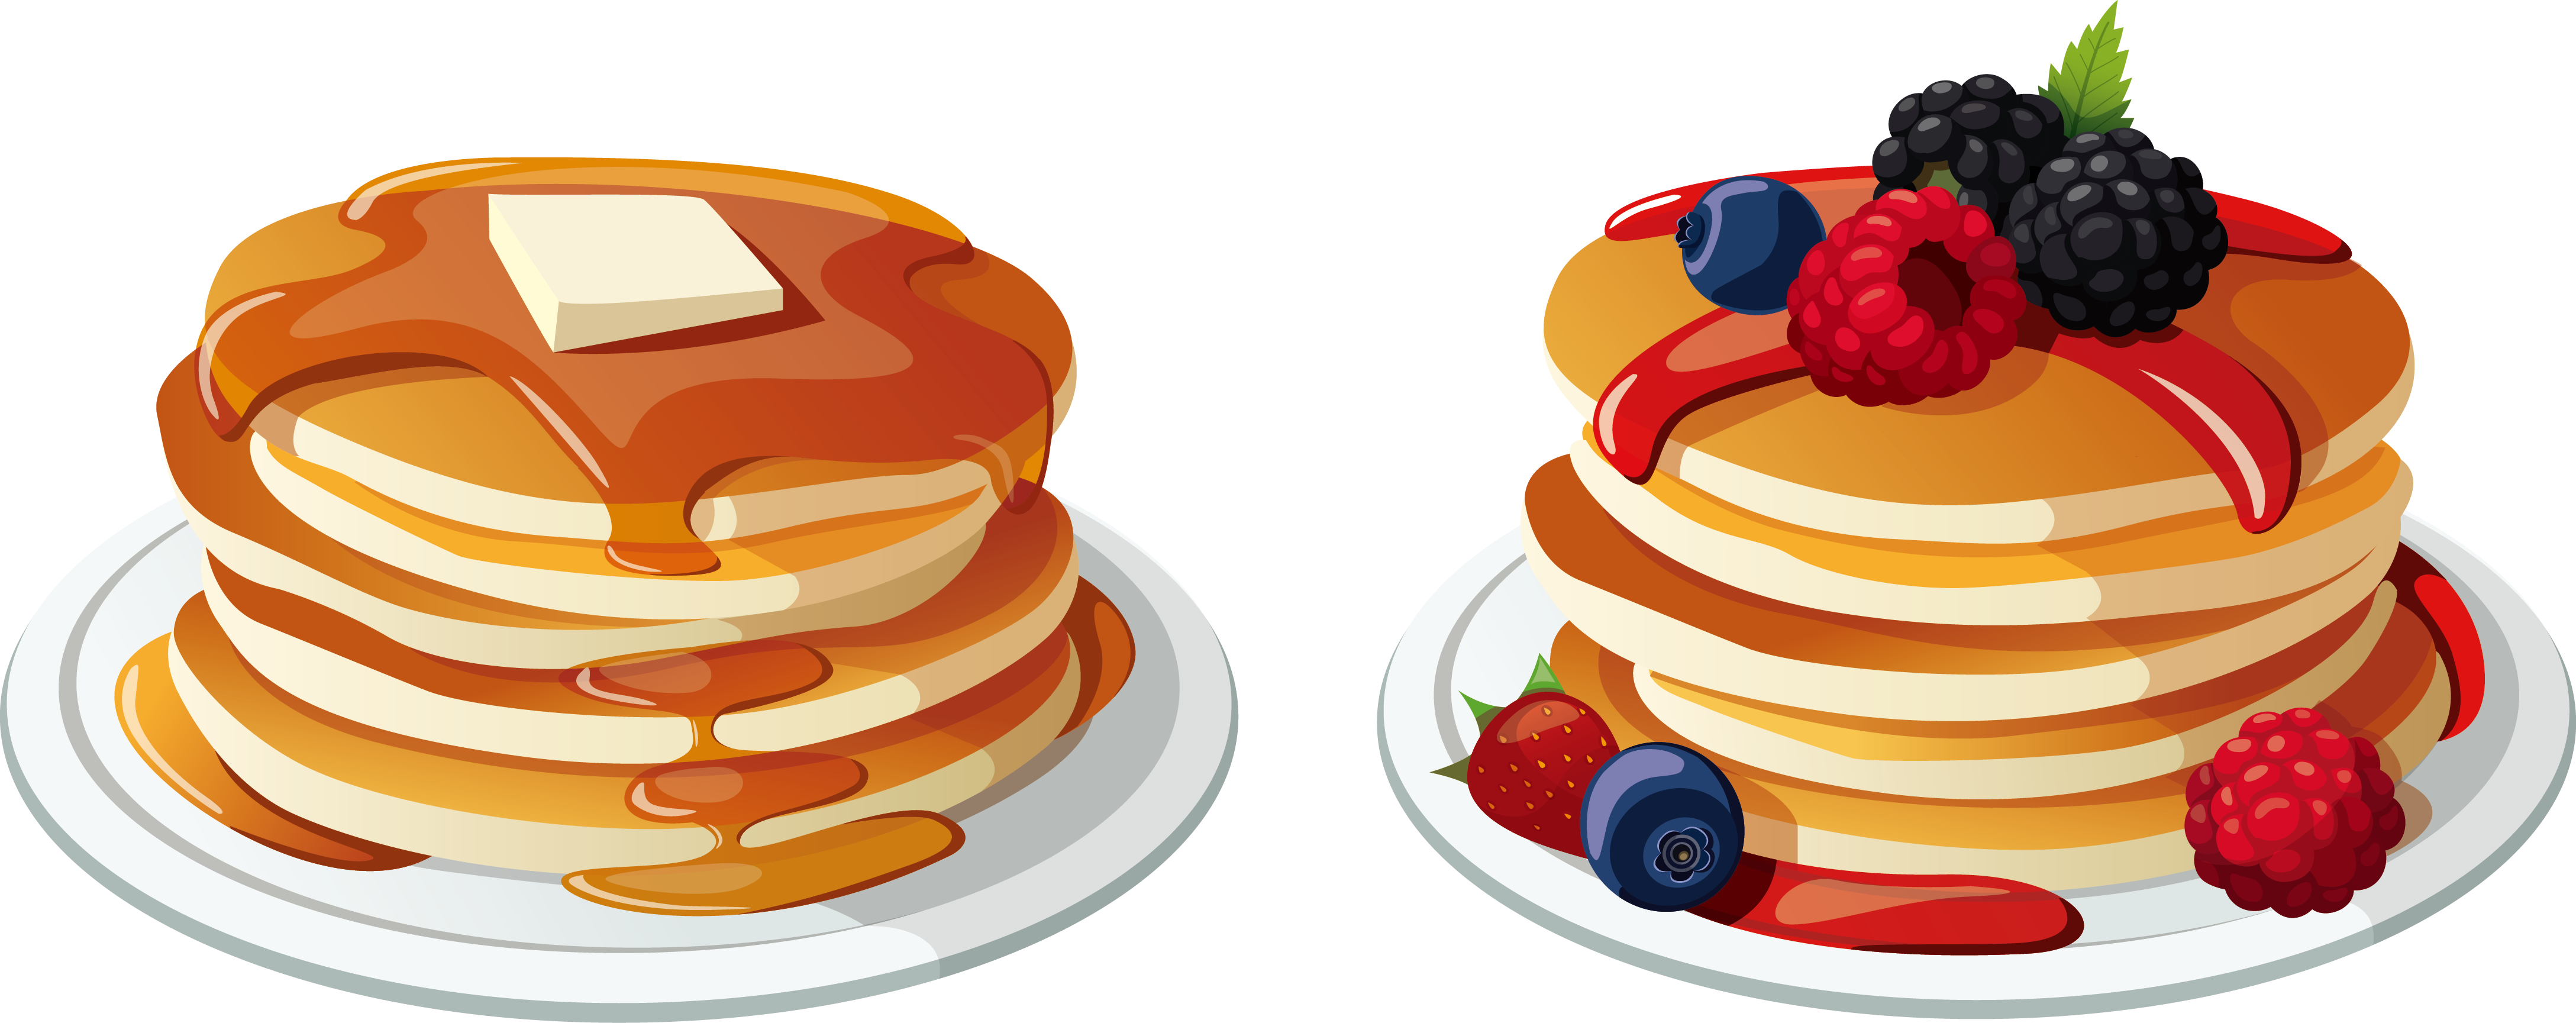 Clipart coffee pancake. Pancakes breakfest frames illustrations